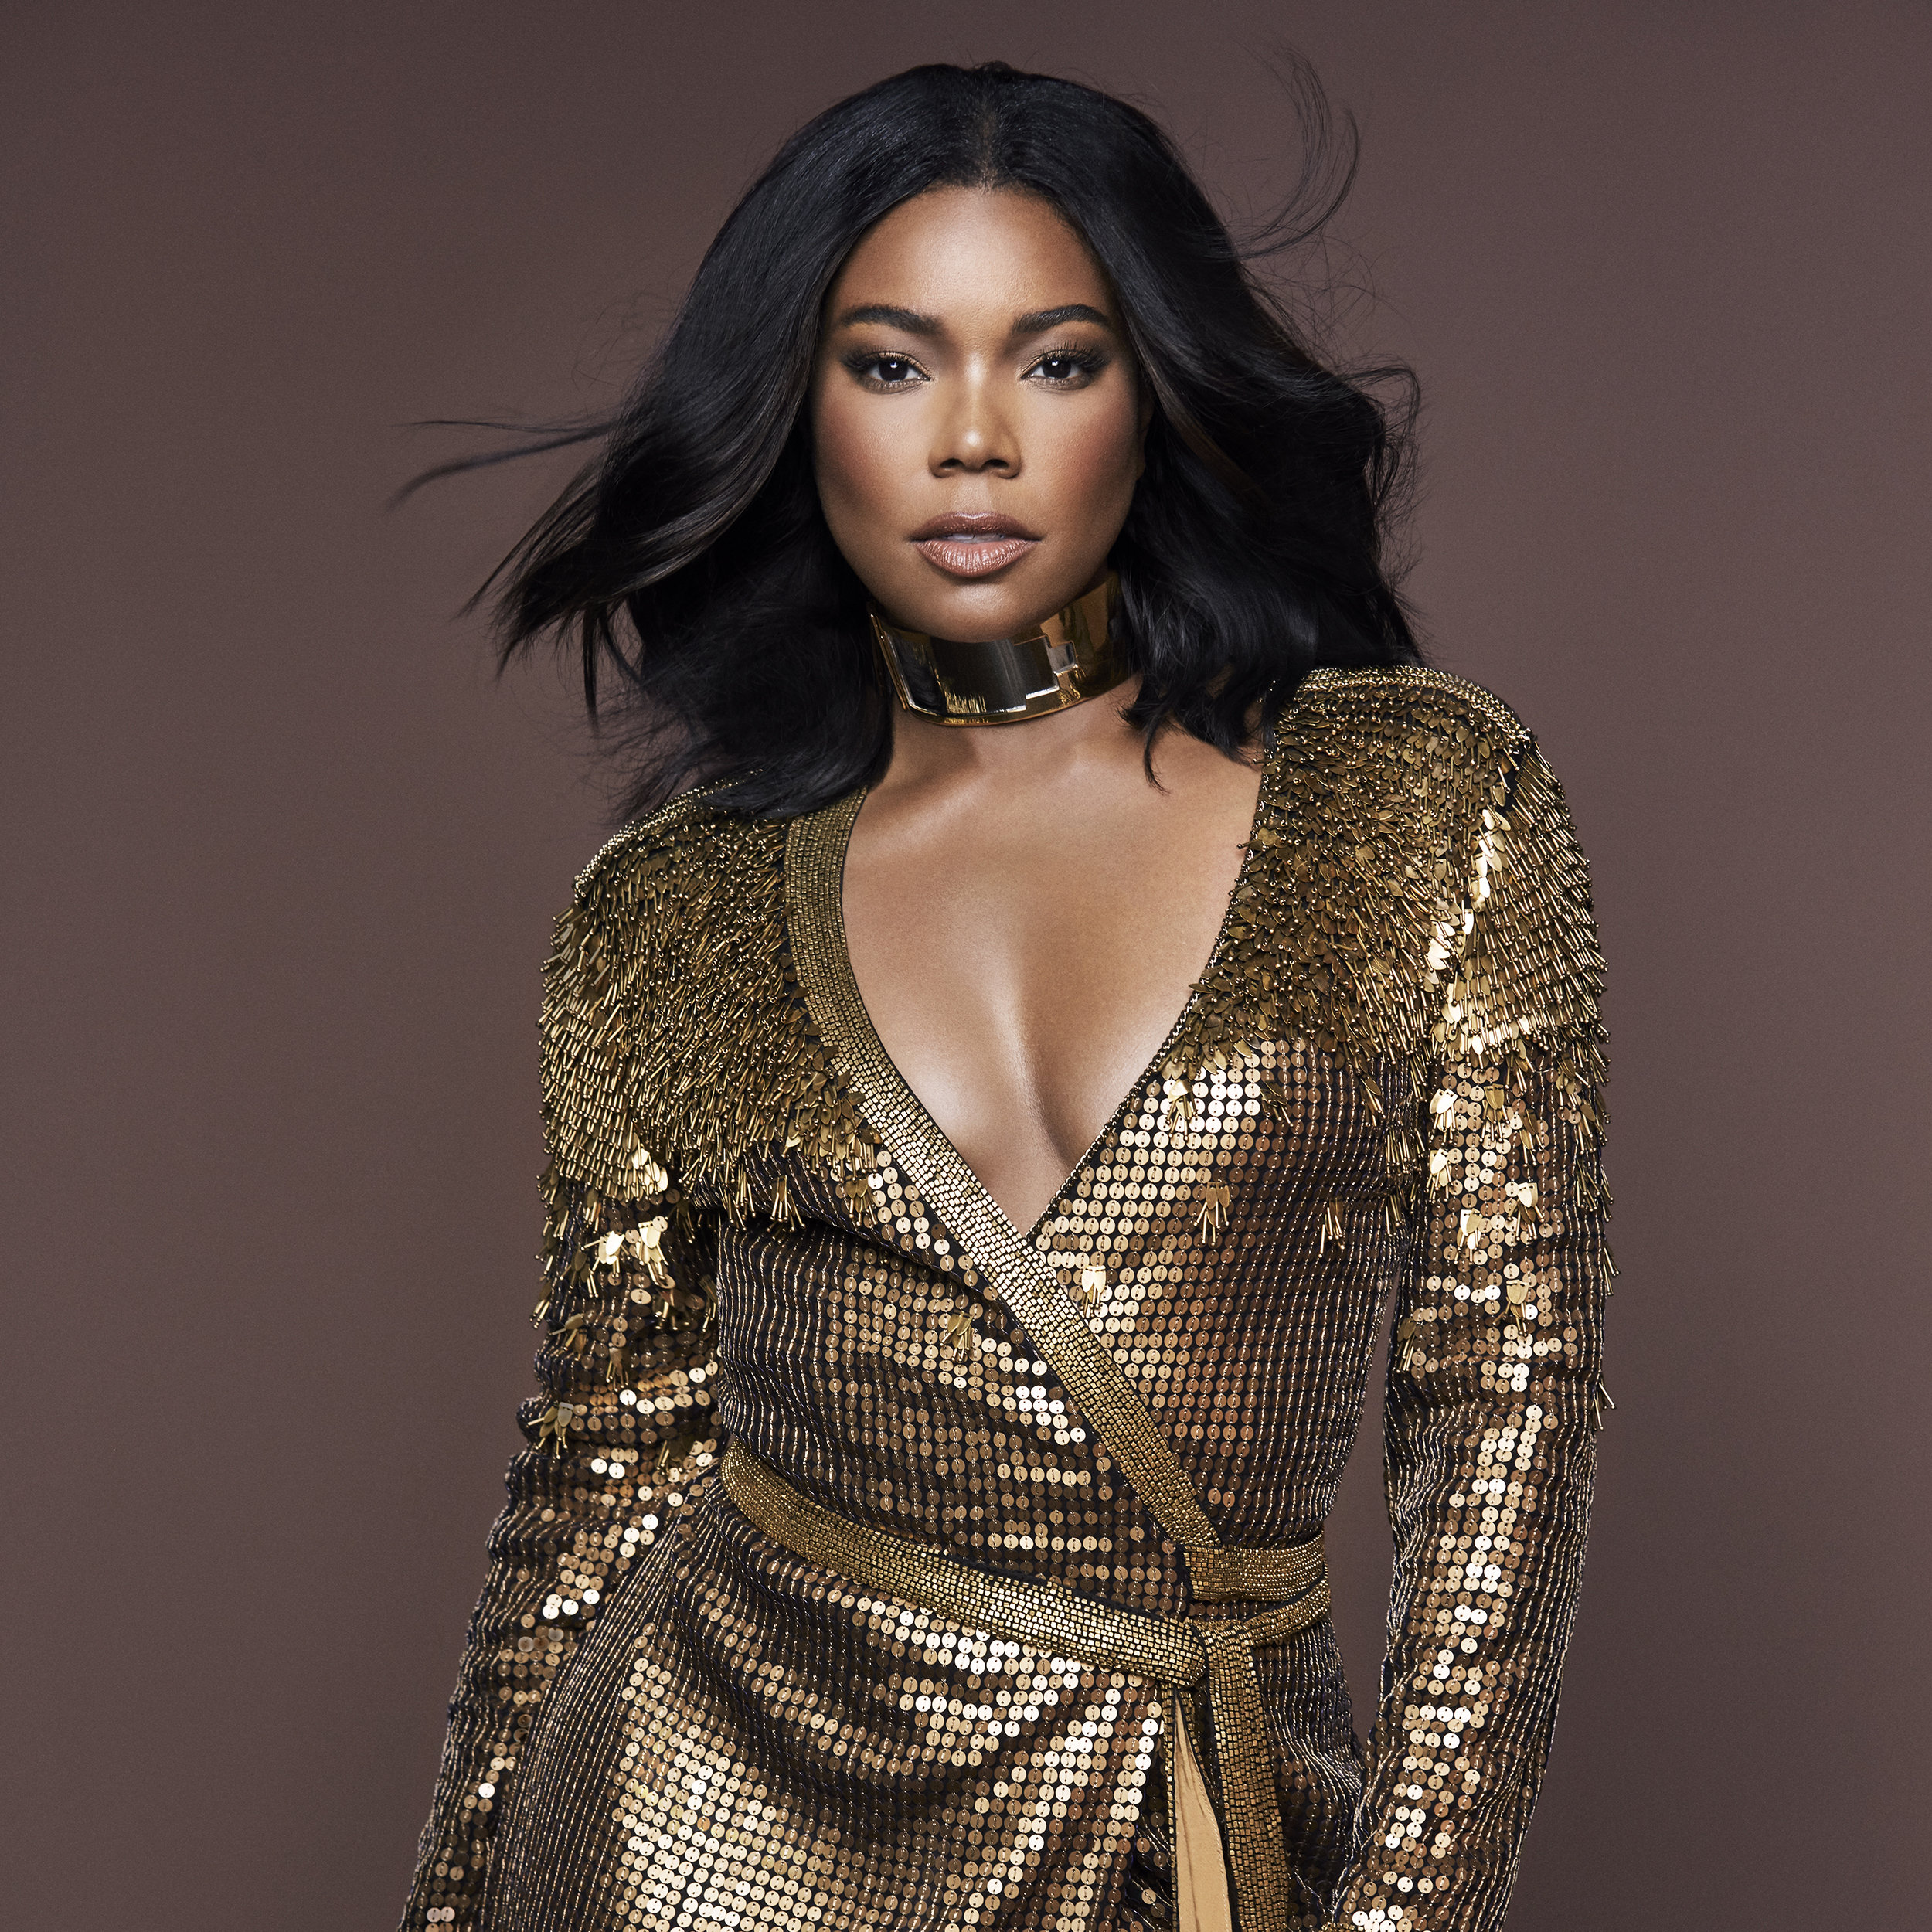 Watch: Gabrielle Union Talks About Miscarriages